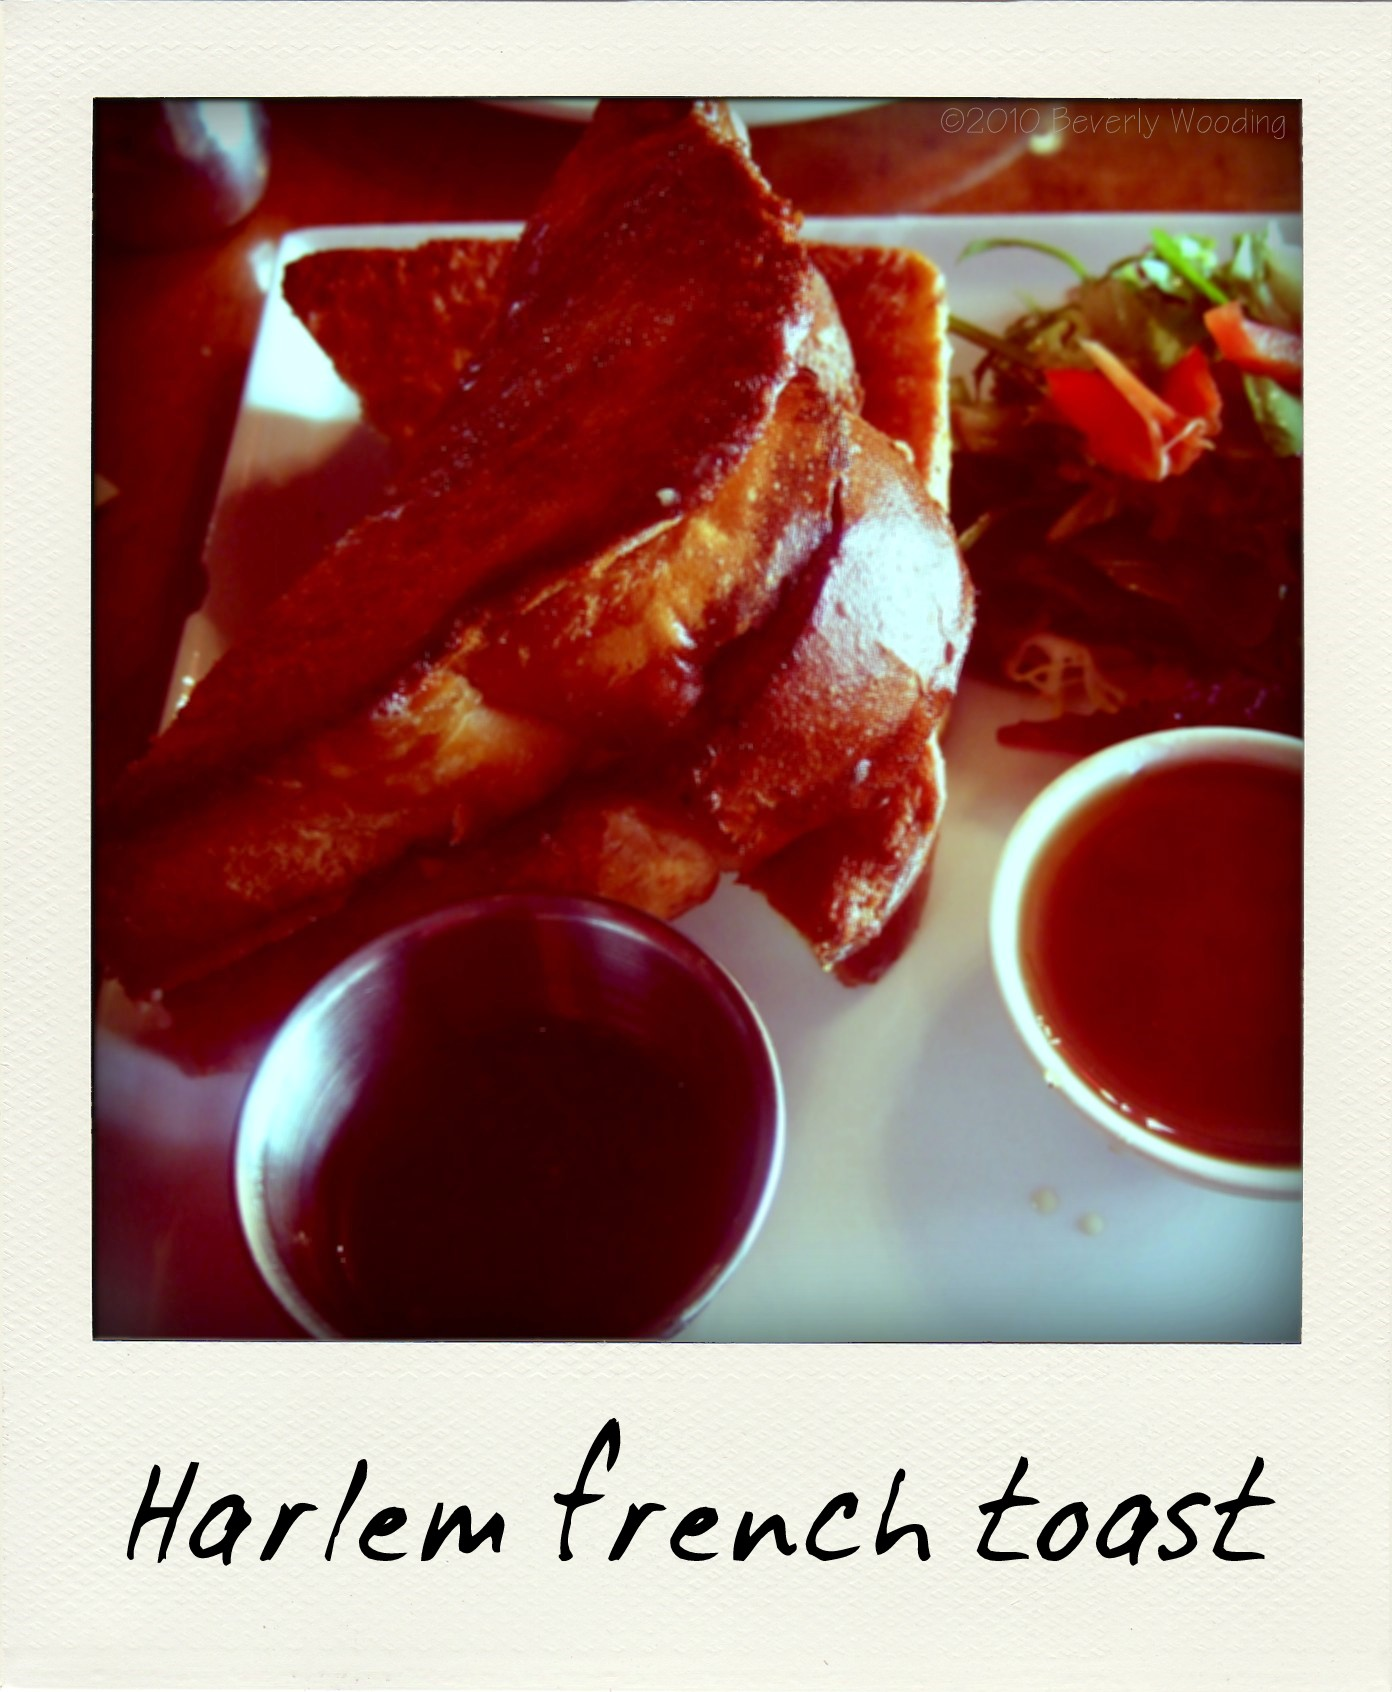 Harlem french toast